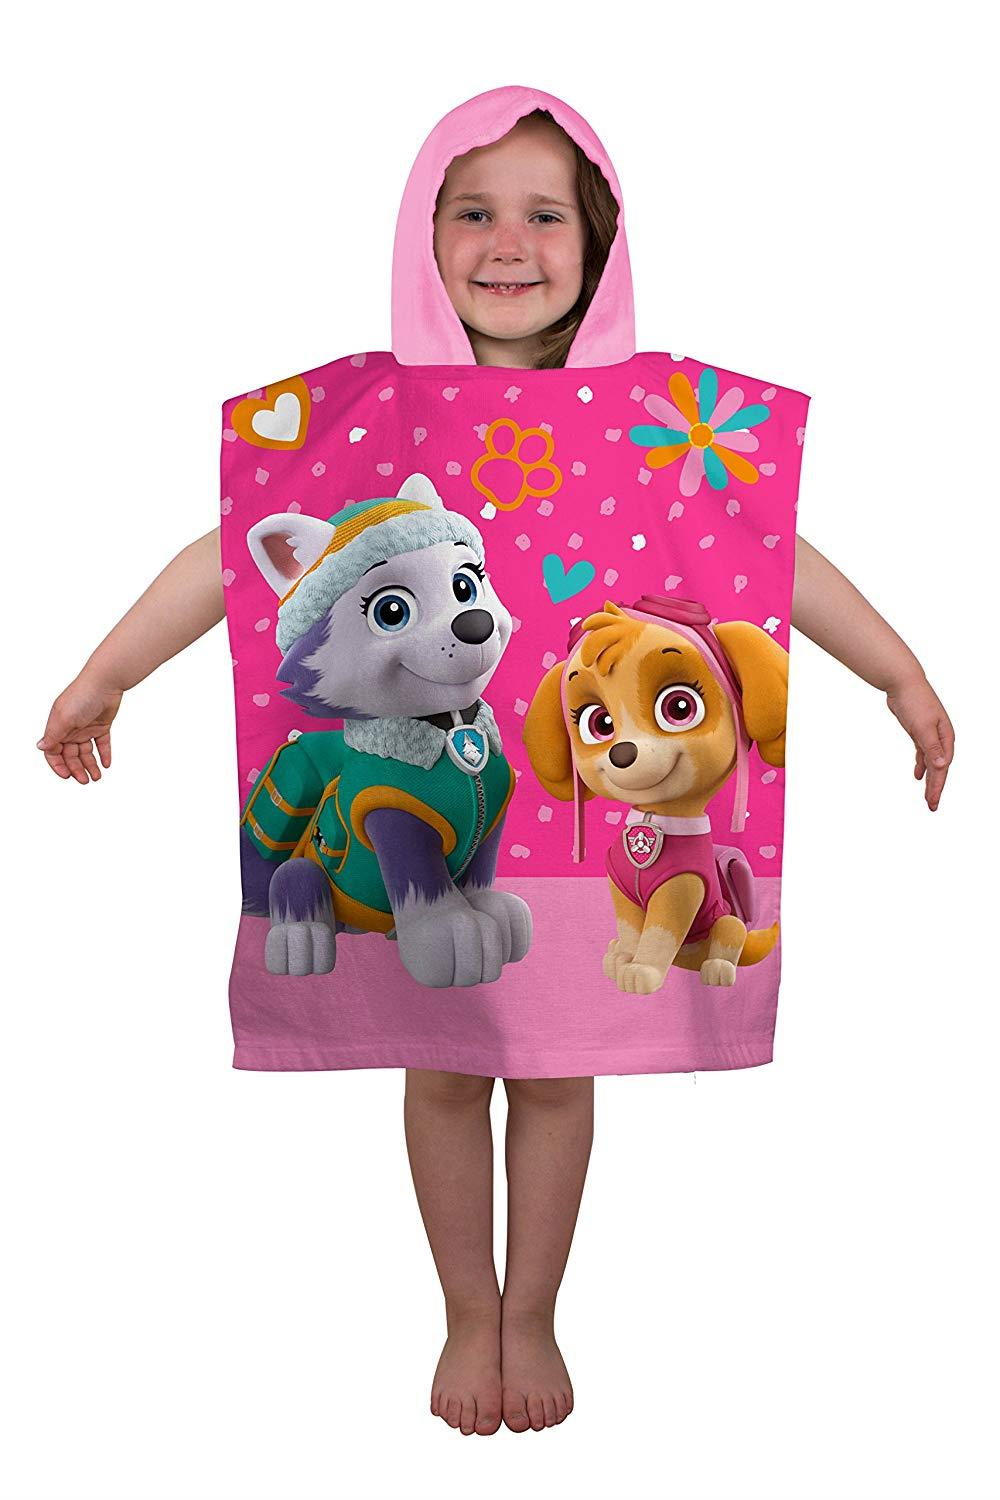 Kids-Boys-Novelty-Girls-Character-Hooded-Towel-Poncho-Beach-Bath-Swim thumbnail 28